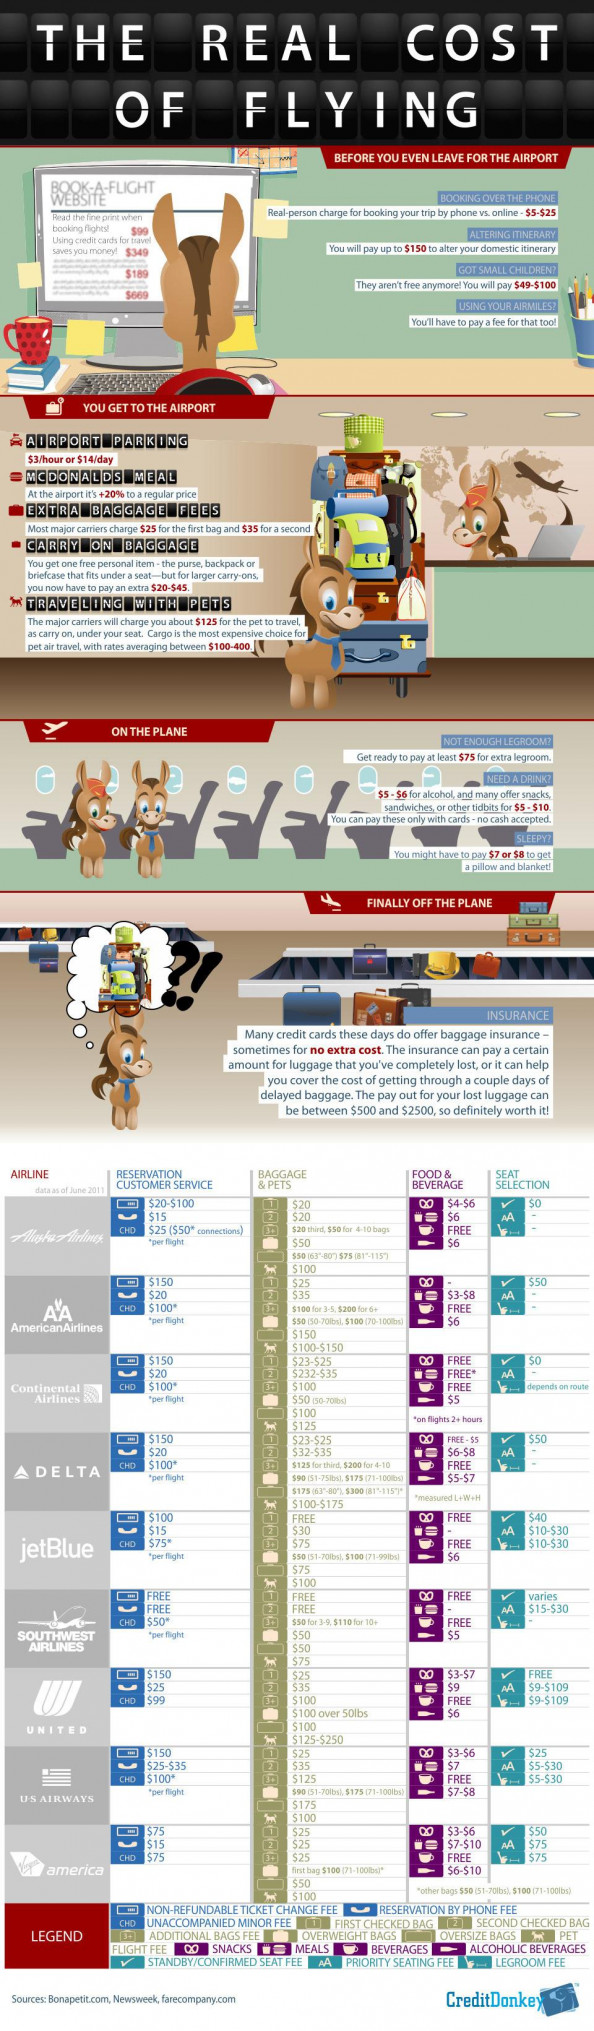 Real Cost of Flying Infographic